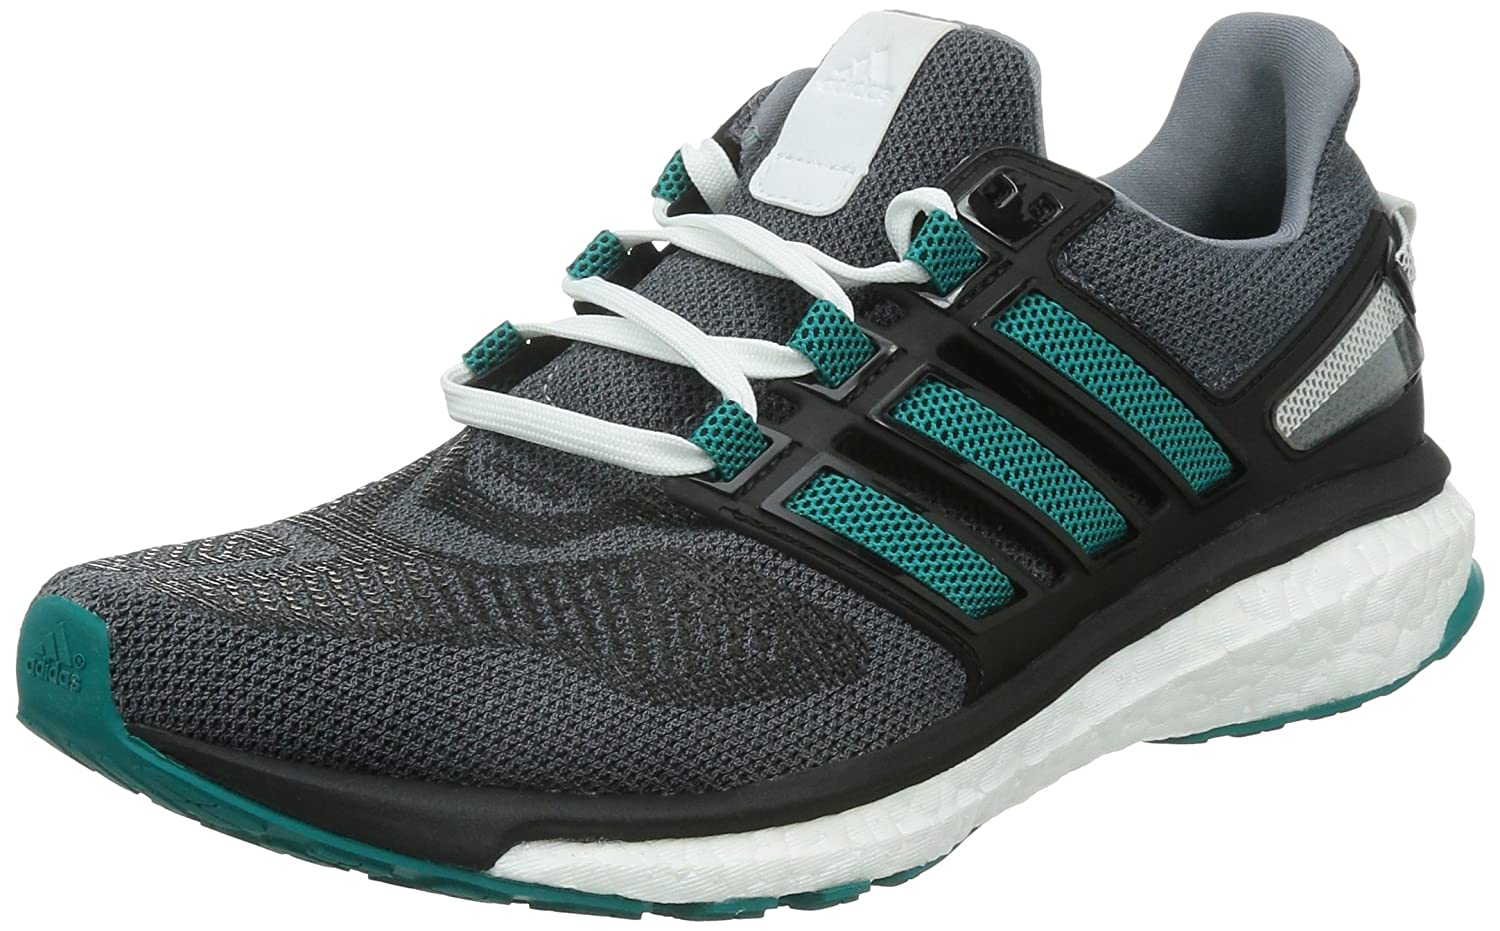 a10cbfad3 Adidas Shoes Energy Boost Price In India los-granados-apartment.co.uk